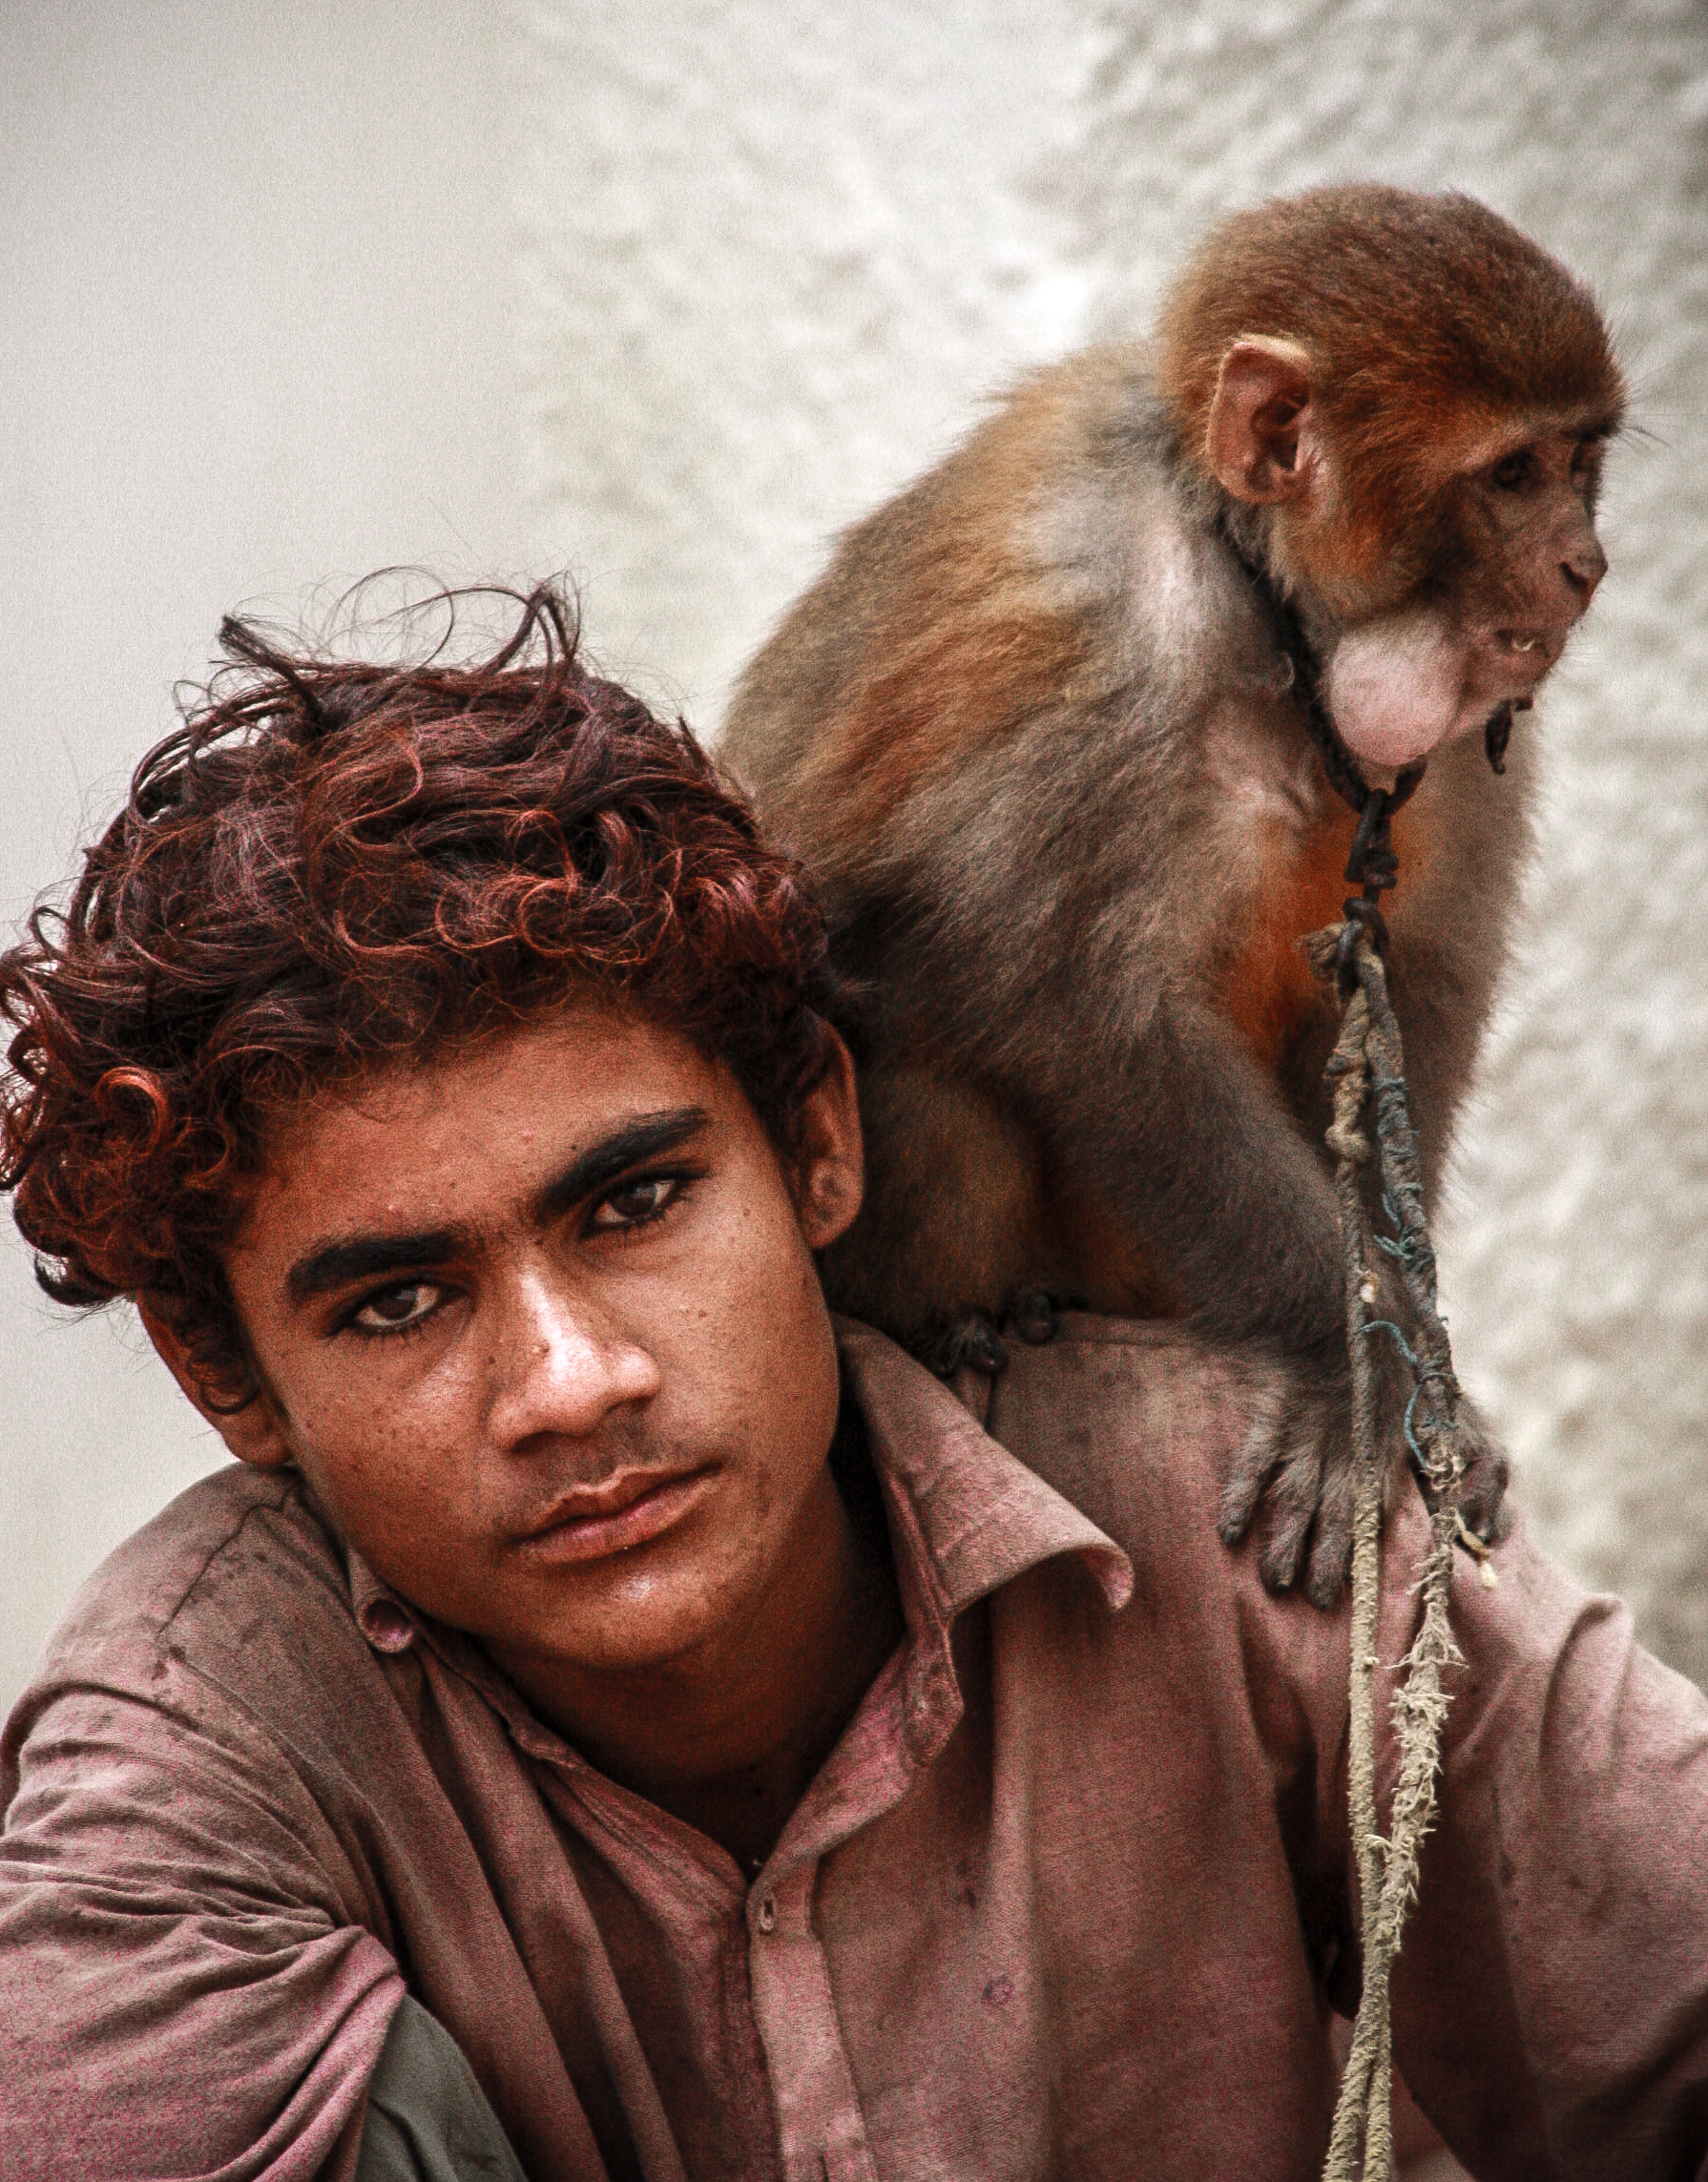 Street-performer and his monkey. Karachi, Pakistan 2008